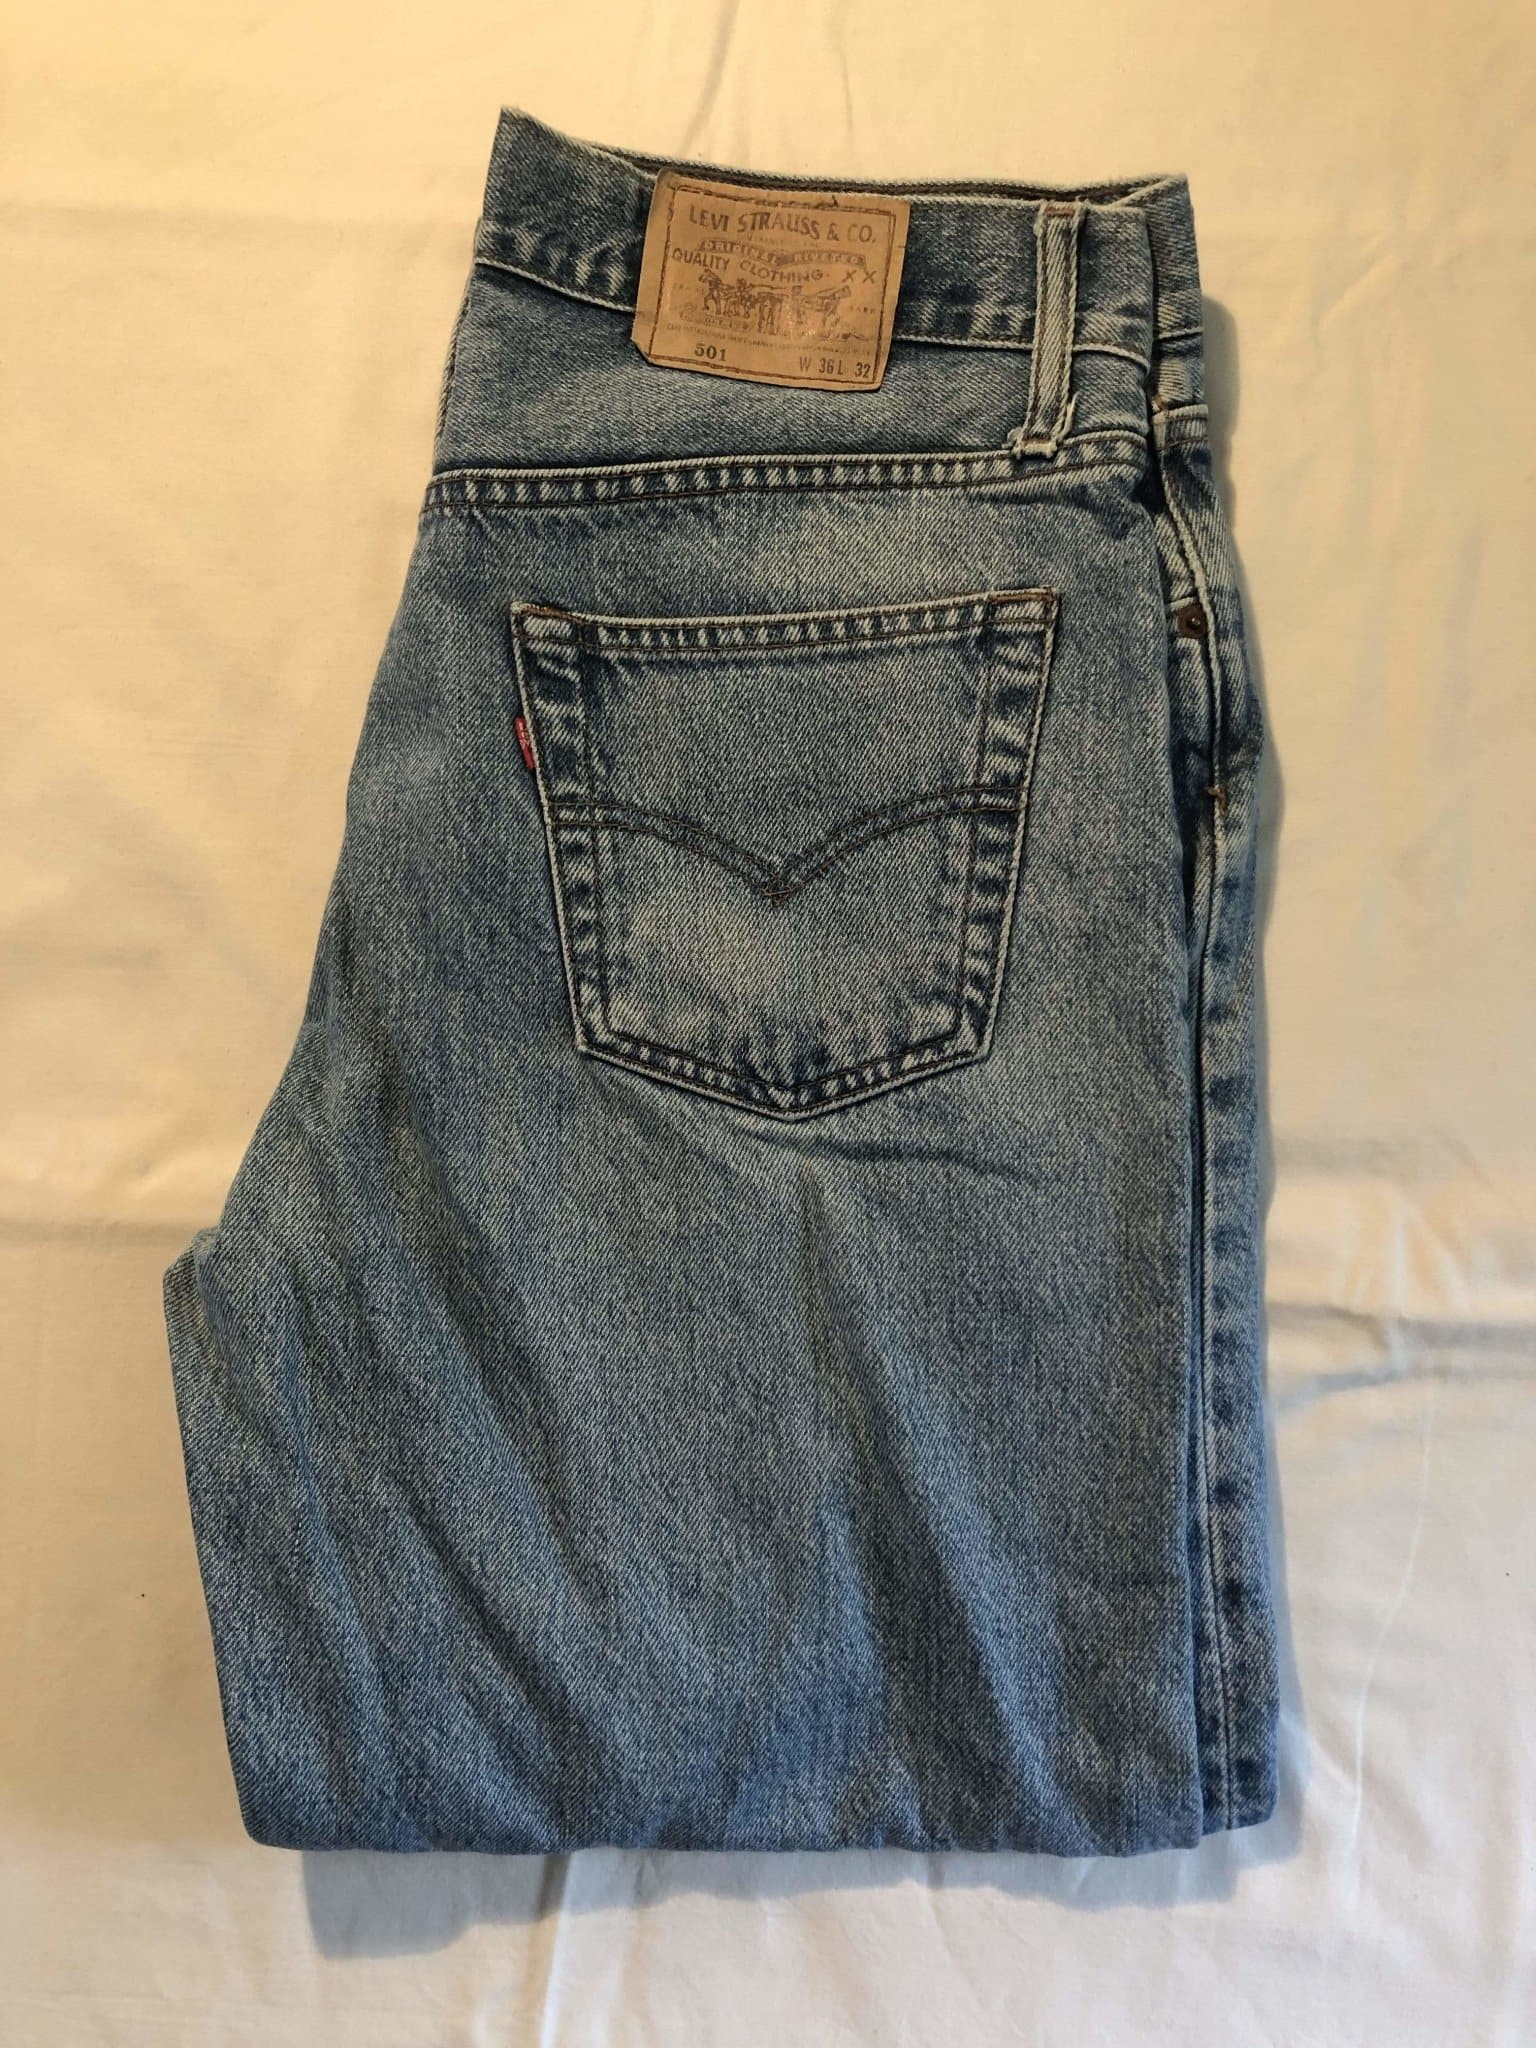 Vintage Levi's Original 501 Jeans W36 L32 (G17) - Discounted Deals UK